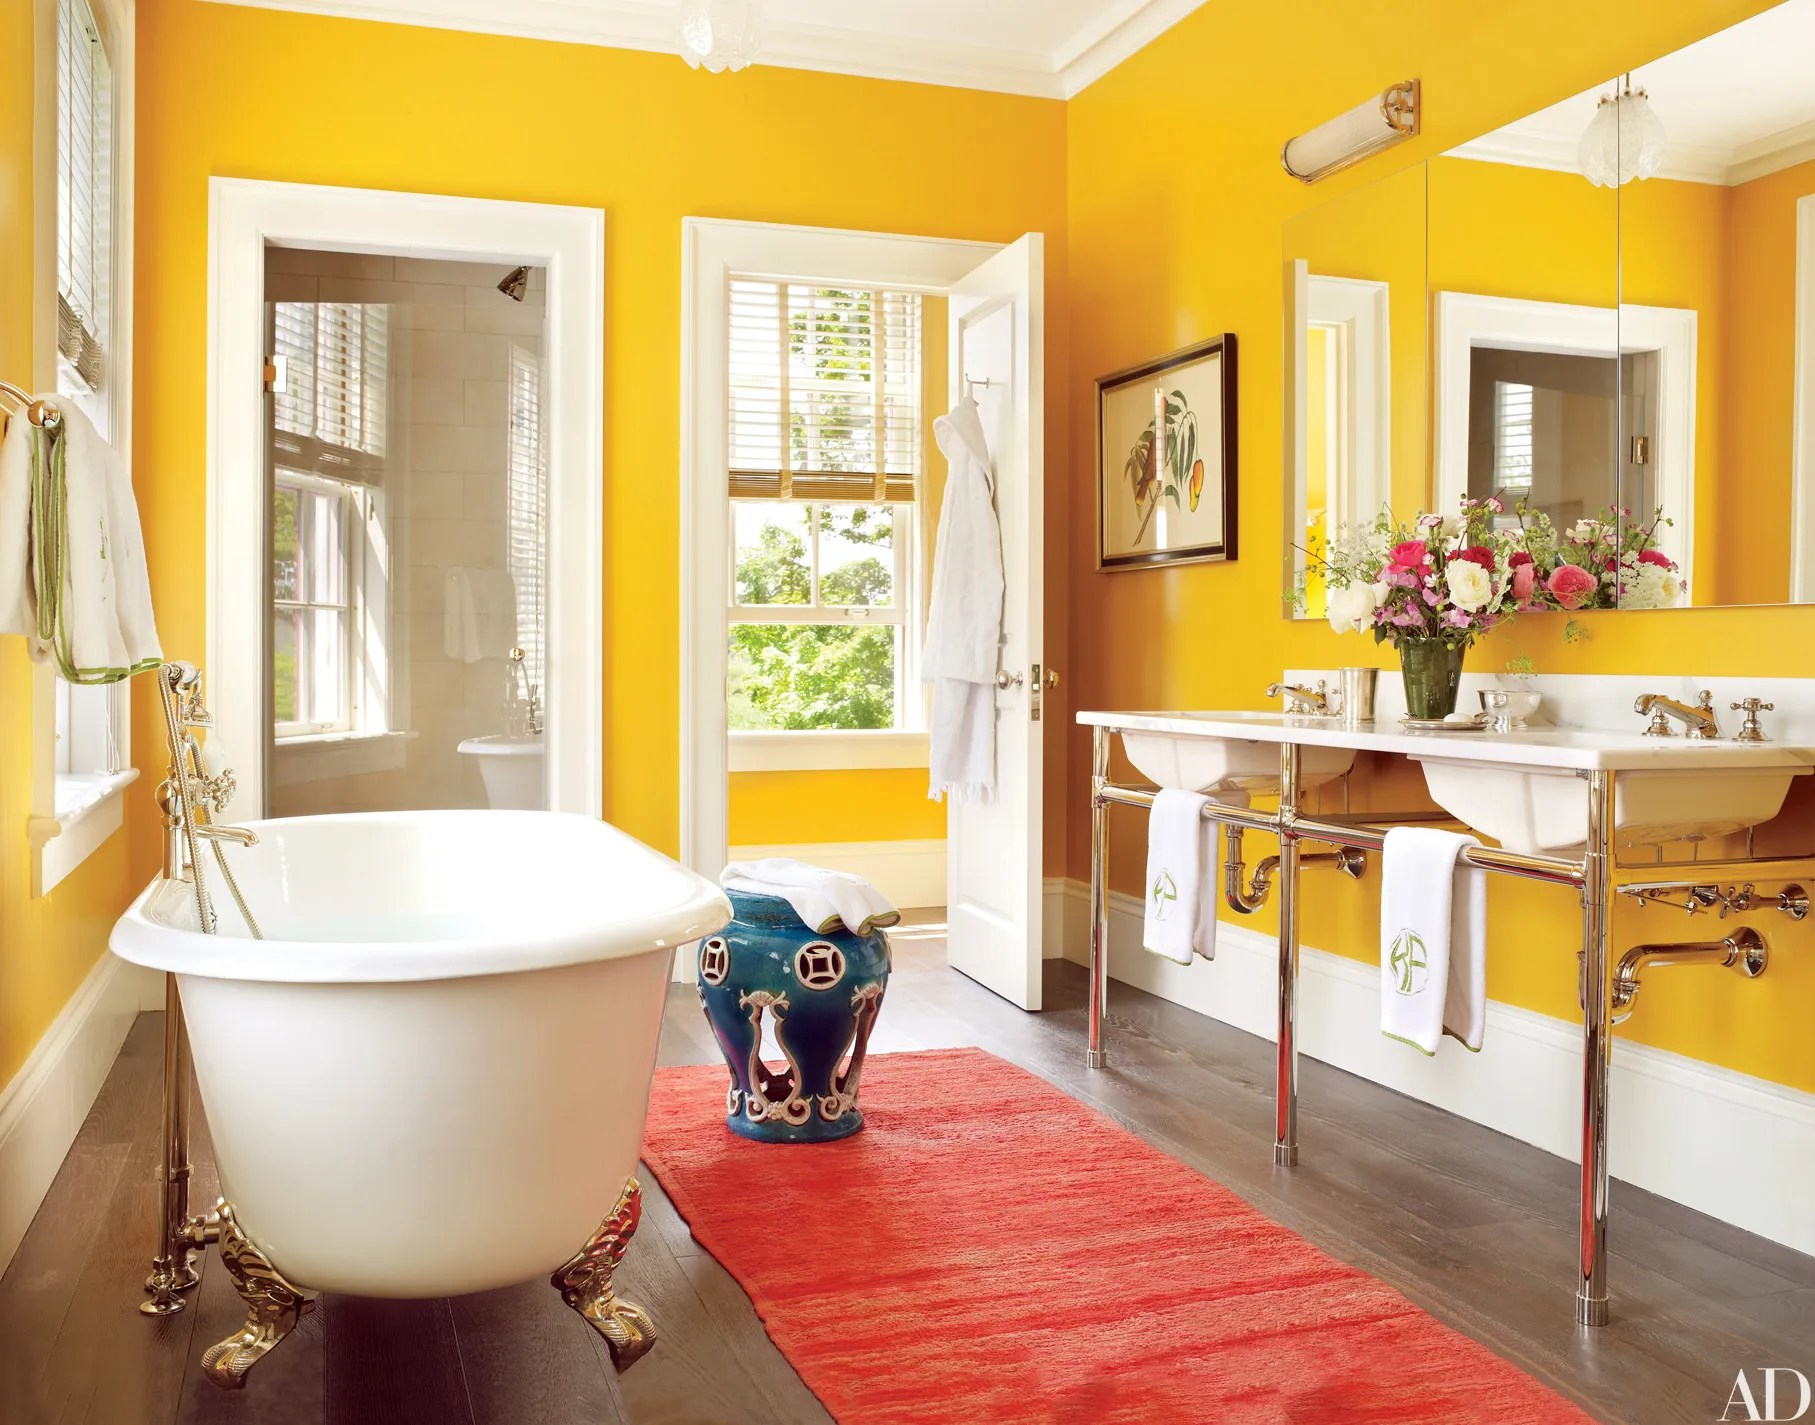 20 Colorful Bathroom Design Ideas That Will Inspire You To